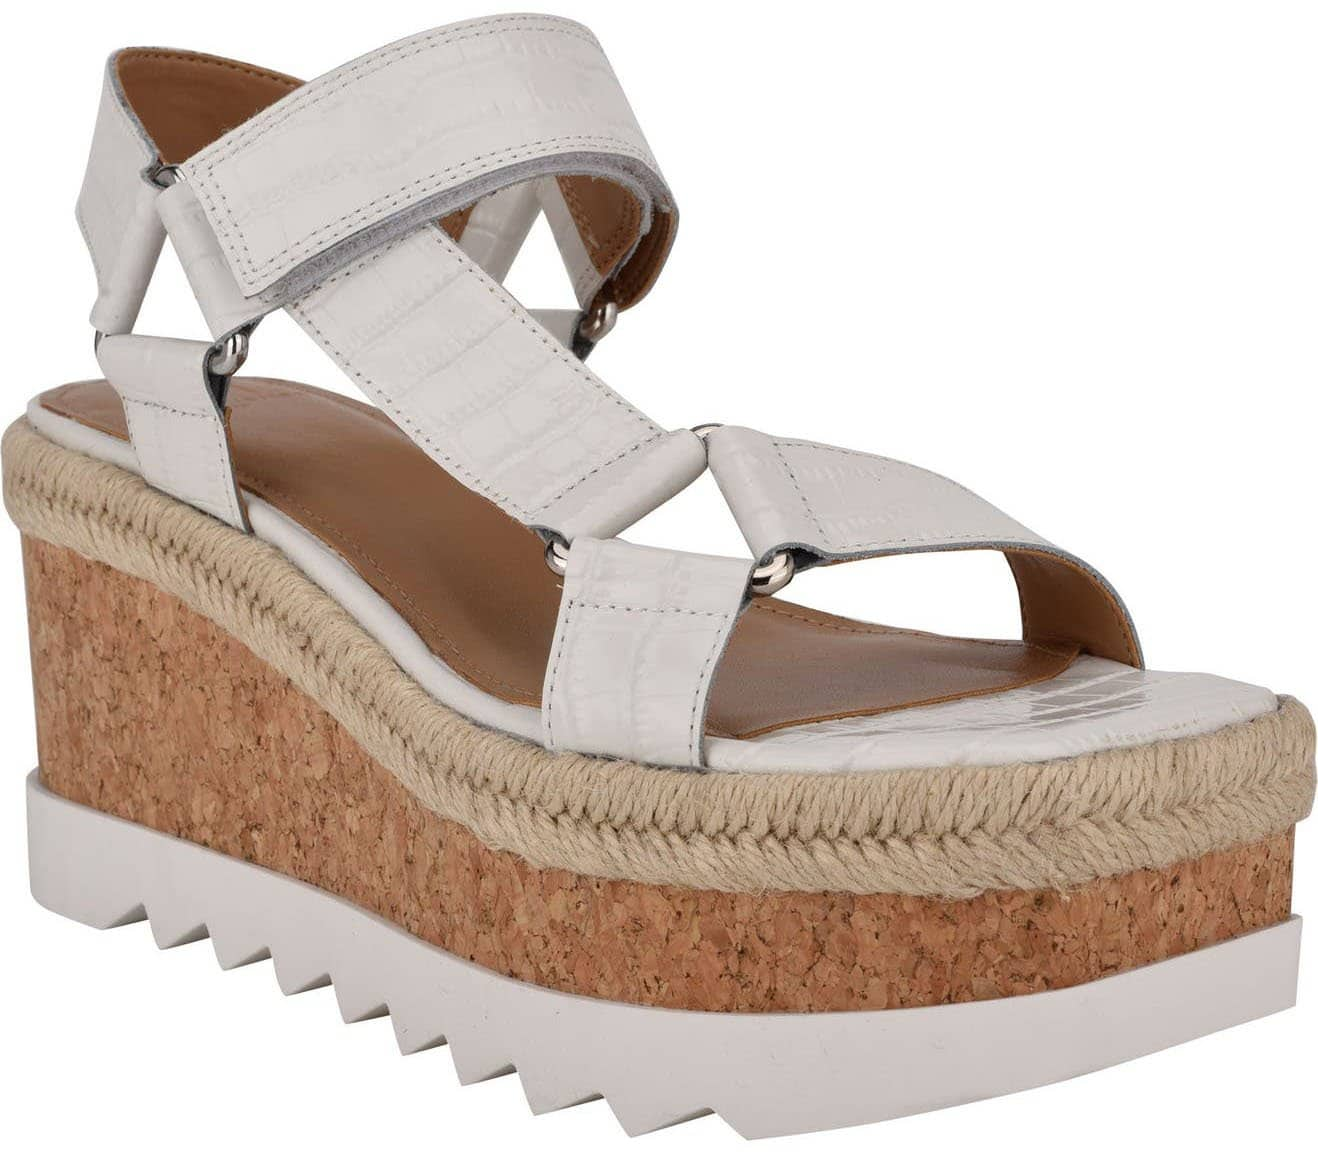 A sleek yet sporty sandal featuring trendy platform cork wedge with an espadrille-inspired trim